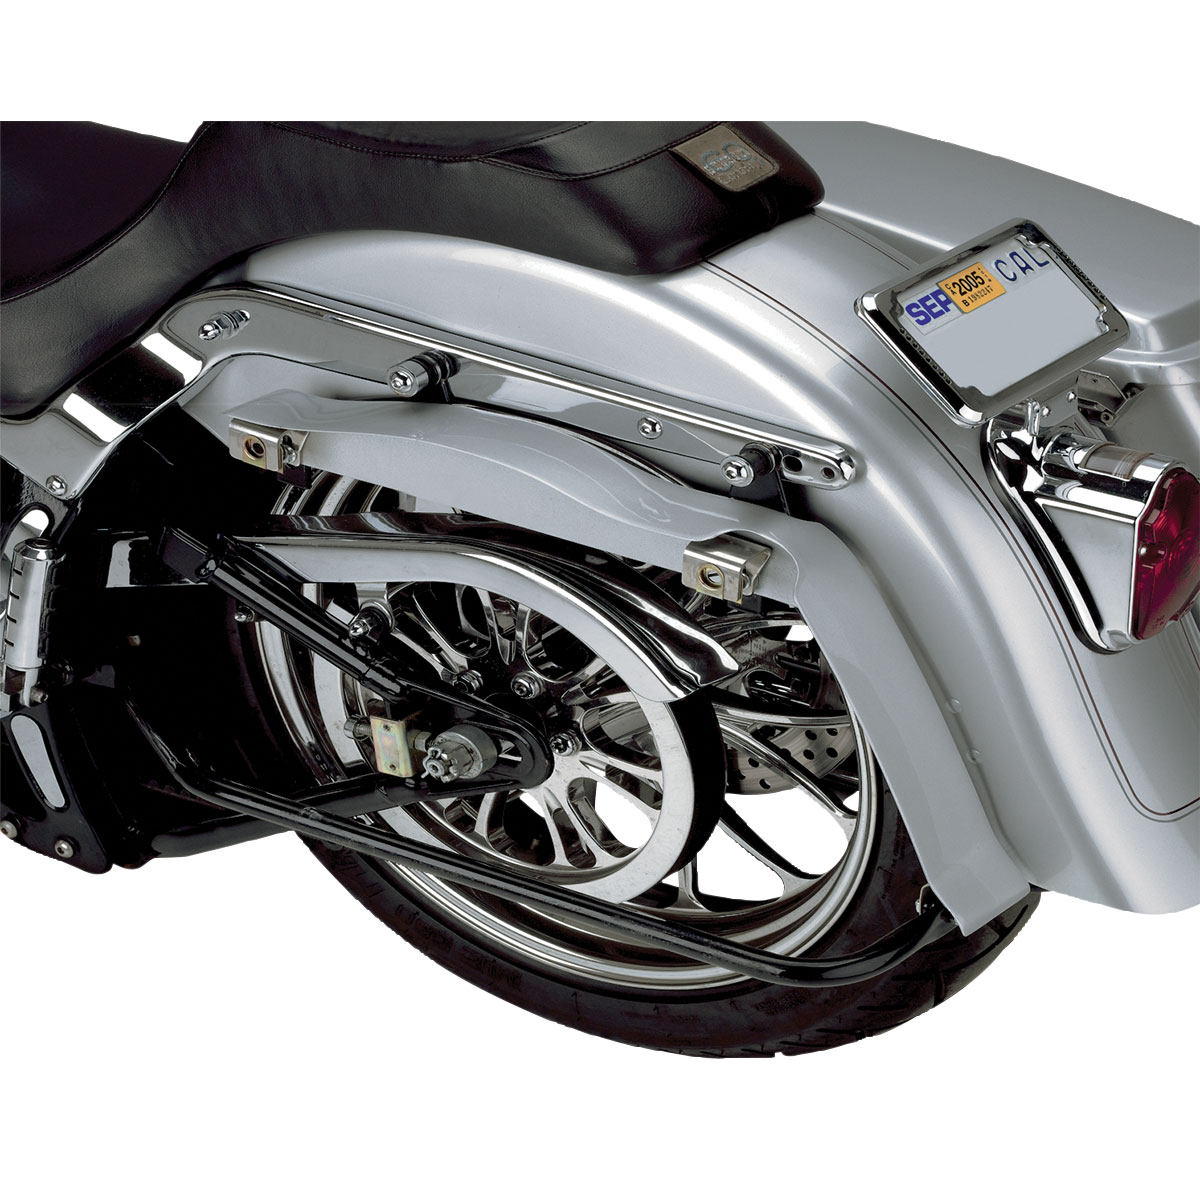 CycleVisions Saddlebag Filler Panels Chrome